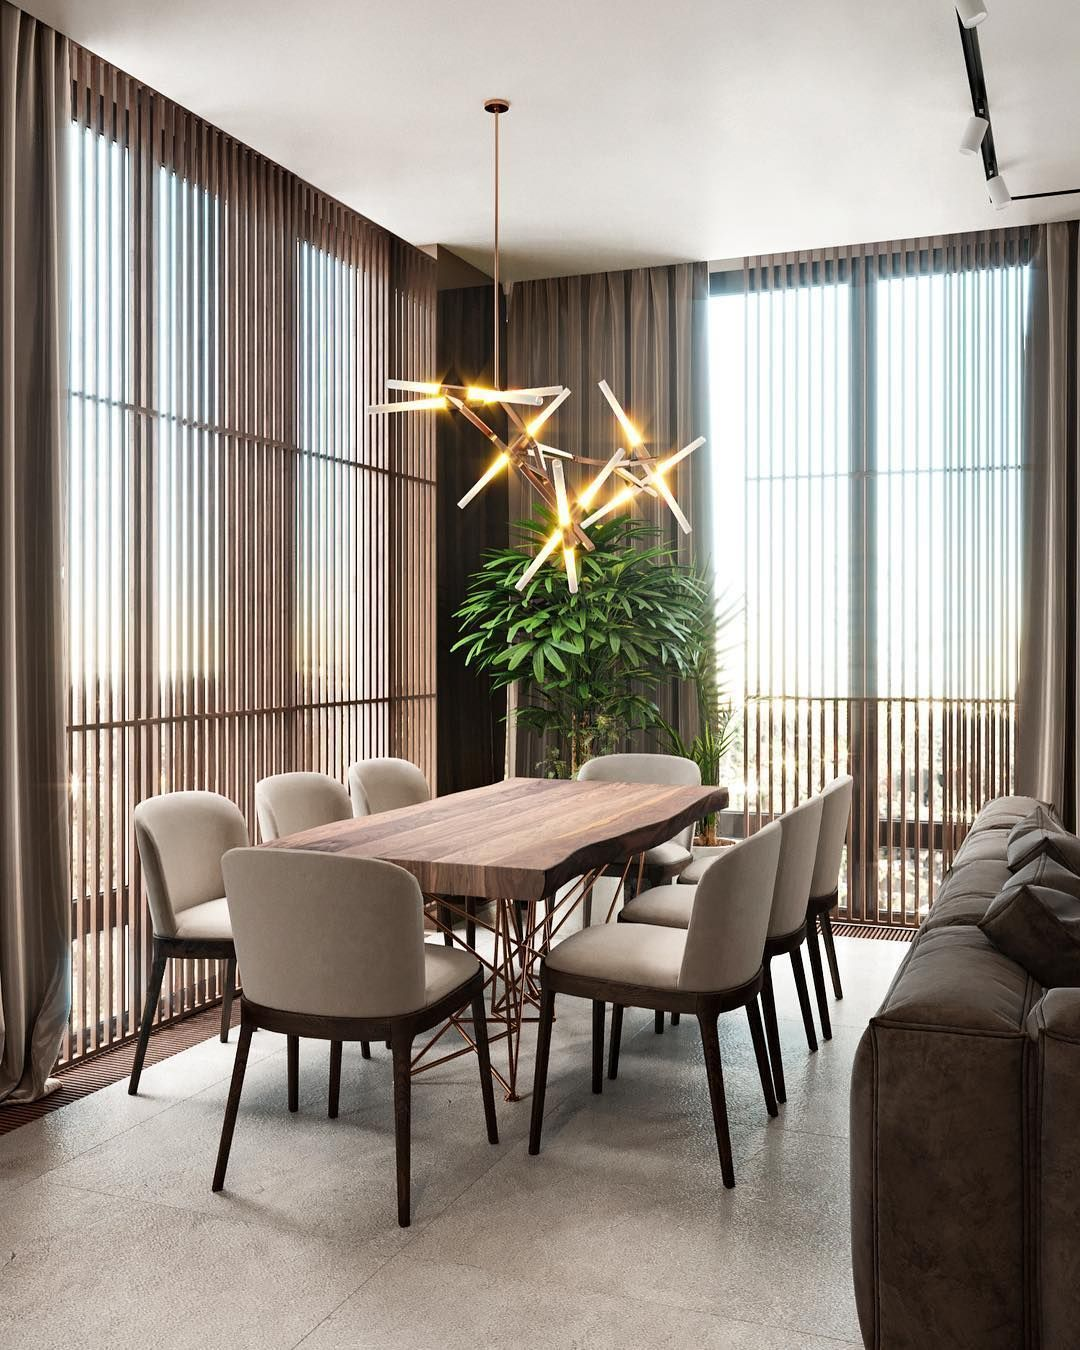 20 Best Minimalist Dining Room Design Ideas For Dinner: Brabbu Contract Helps You To Choose The Right Dining